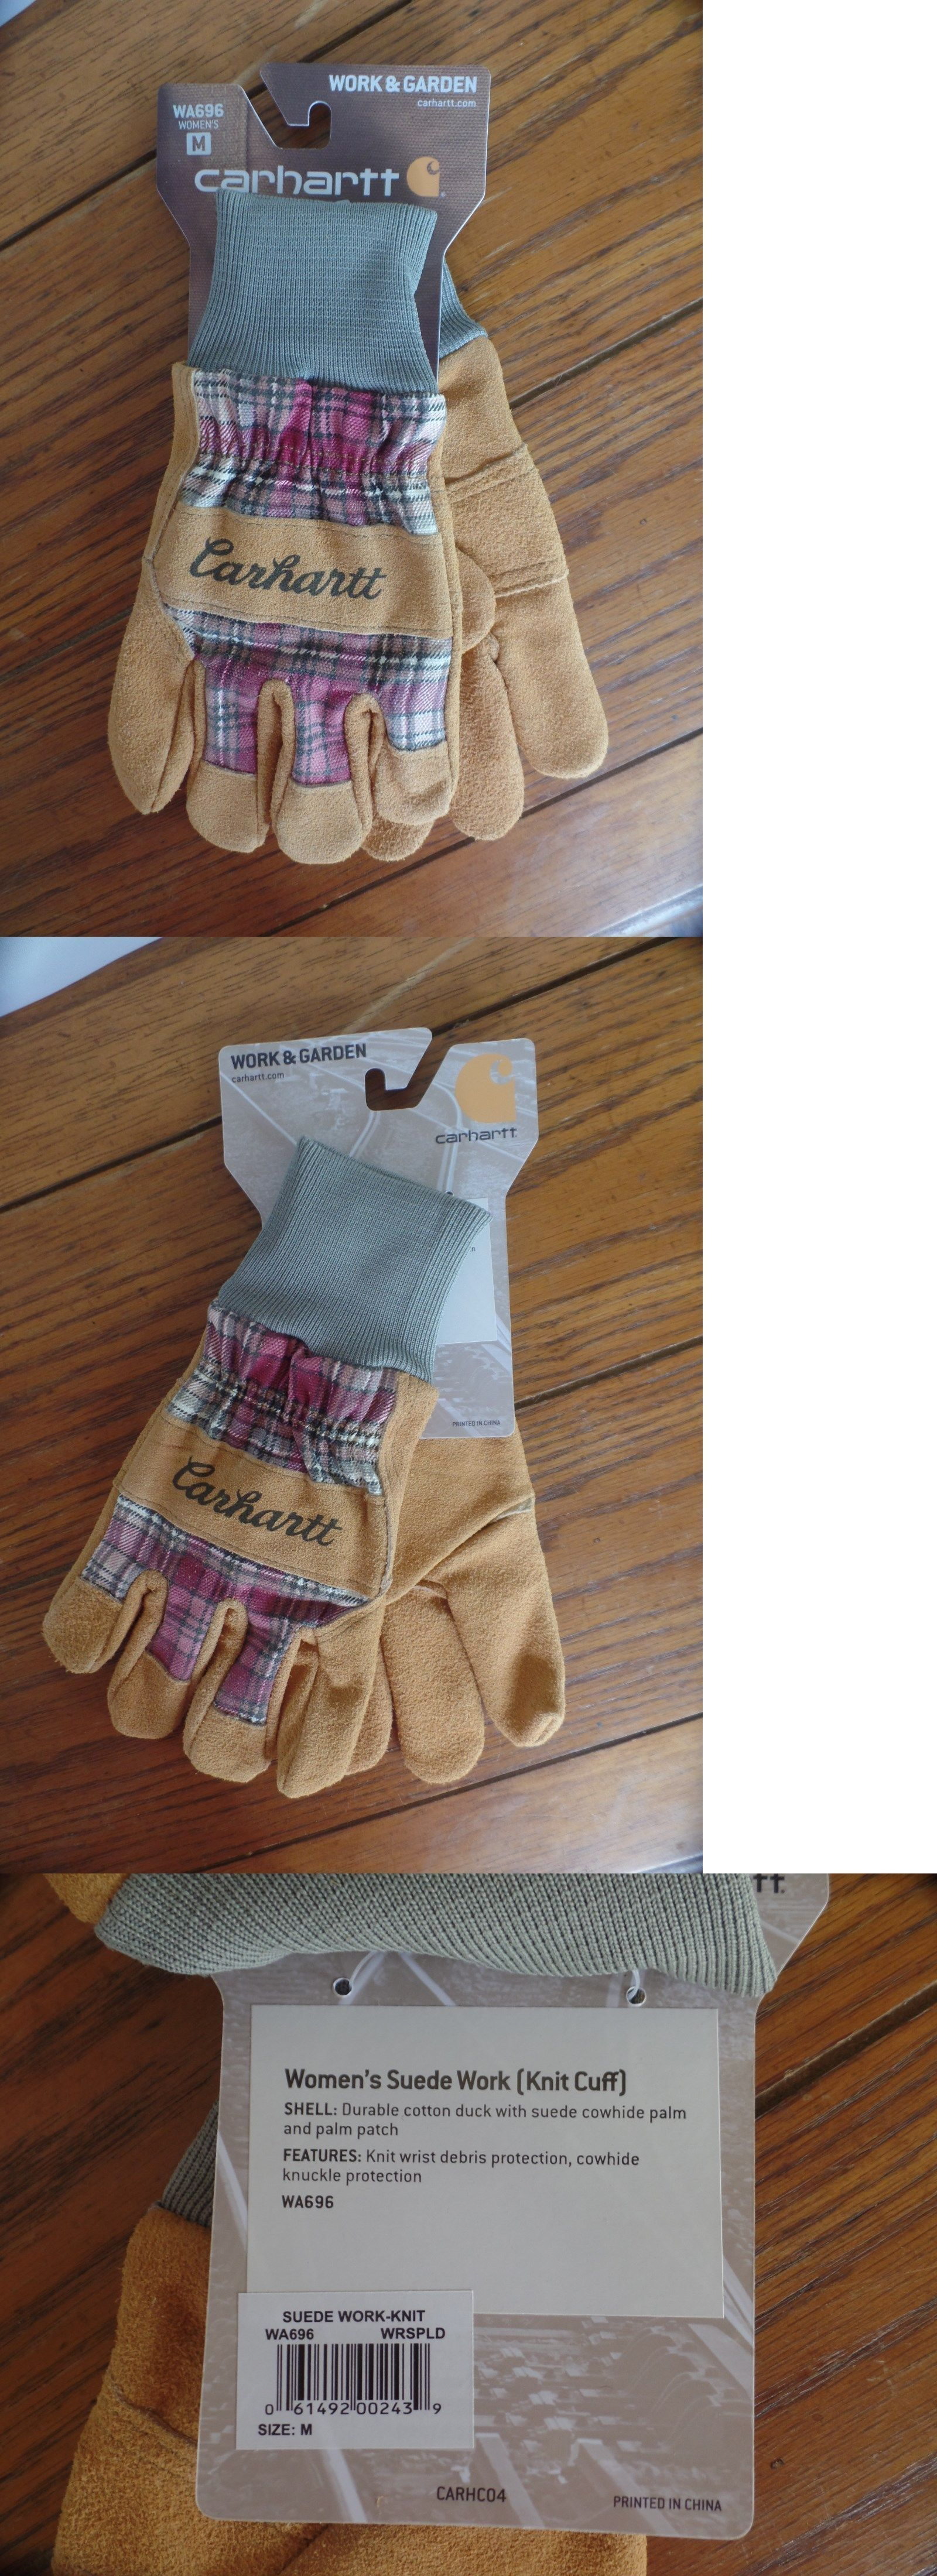 Gardening Gloves 139864: Carhartt Women S Wa696 Suede Work Gloves. Knit Cuff. Medium, Nwt S -> BUY IT NOW ONLY: $17.98 on #eBay #gardening #gloves #carhartt #women #suede #carharttwomen Gardening Gloves 139864: Carhartt Women S Wa696 Suede Work Gloves. Knit Cuff. Medium, Nwt S -> BUY IT NOW ONLY: $17.98 on #eBay #gardening #gloves #carhartt #women #suede #carharttwomen Gardening Gloves 139864: Carhartt Women S Wa696 Suede Work Gloves. Knit Cuff. Medium, Nwt S -> BUY IT NOW ONLY: $17.98 on #eBay #carharttwomen